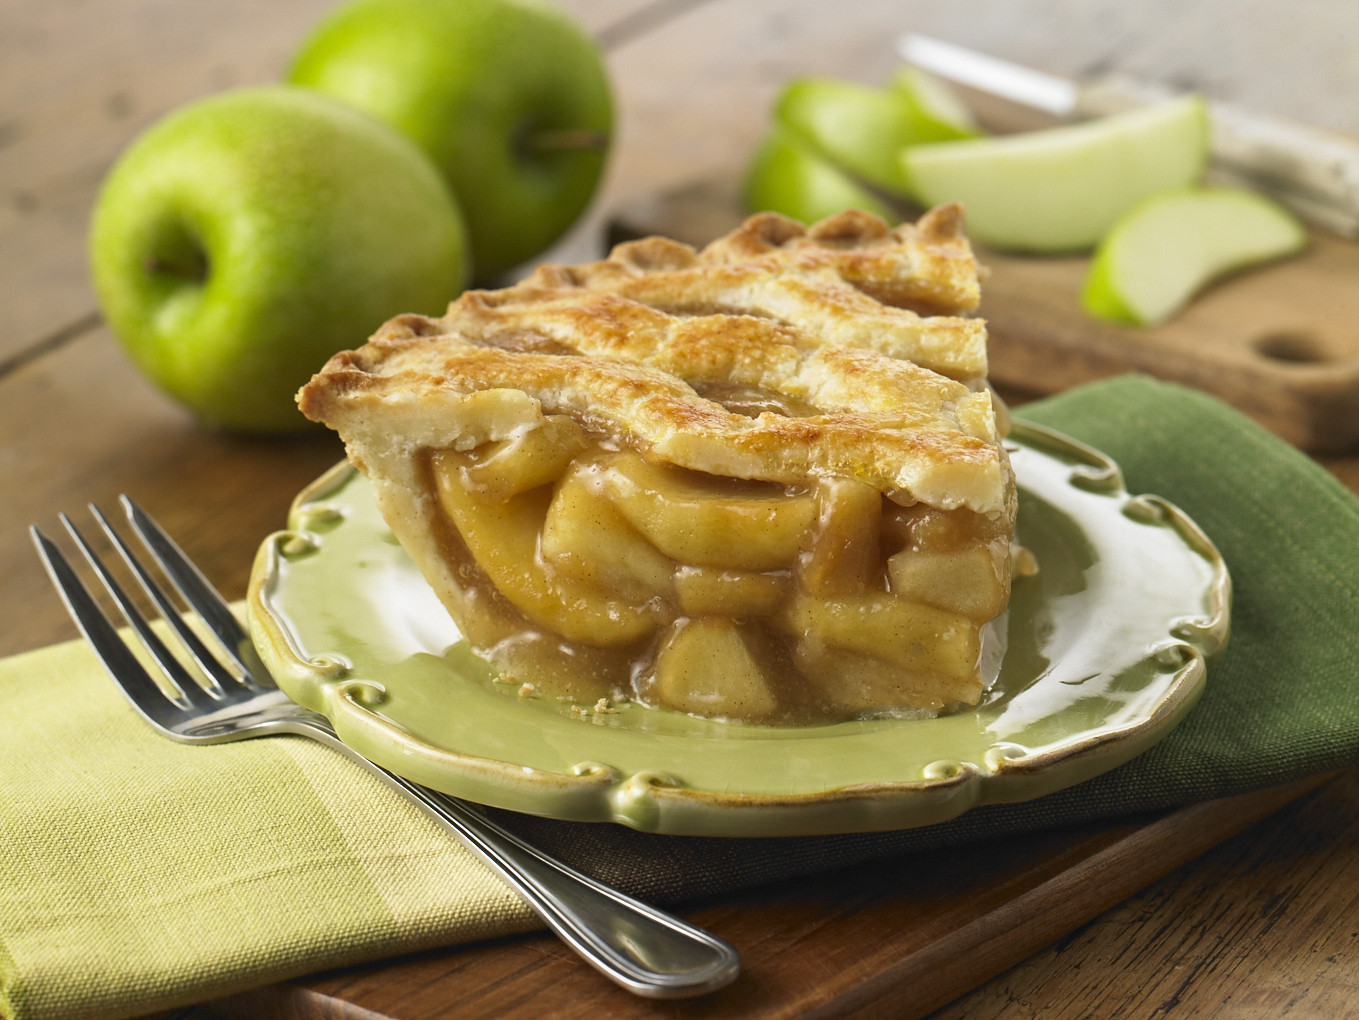 Does Apple Pie Need To Be Refrigerated  COCO S PREMIUM PIES Coco s Bakery